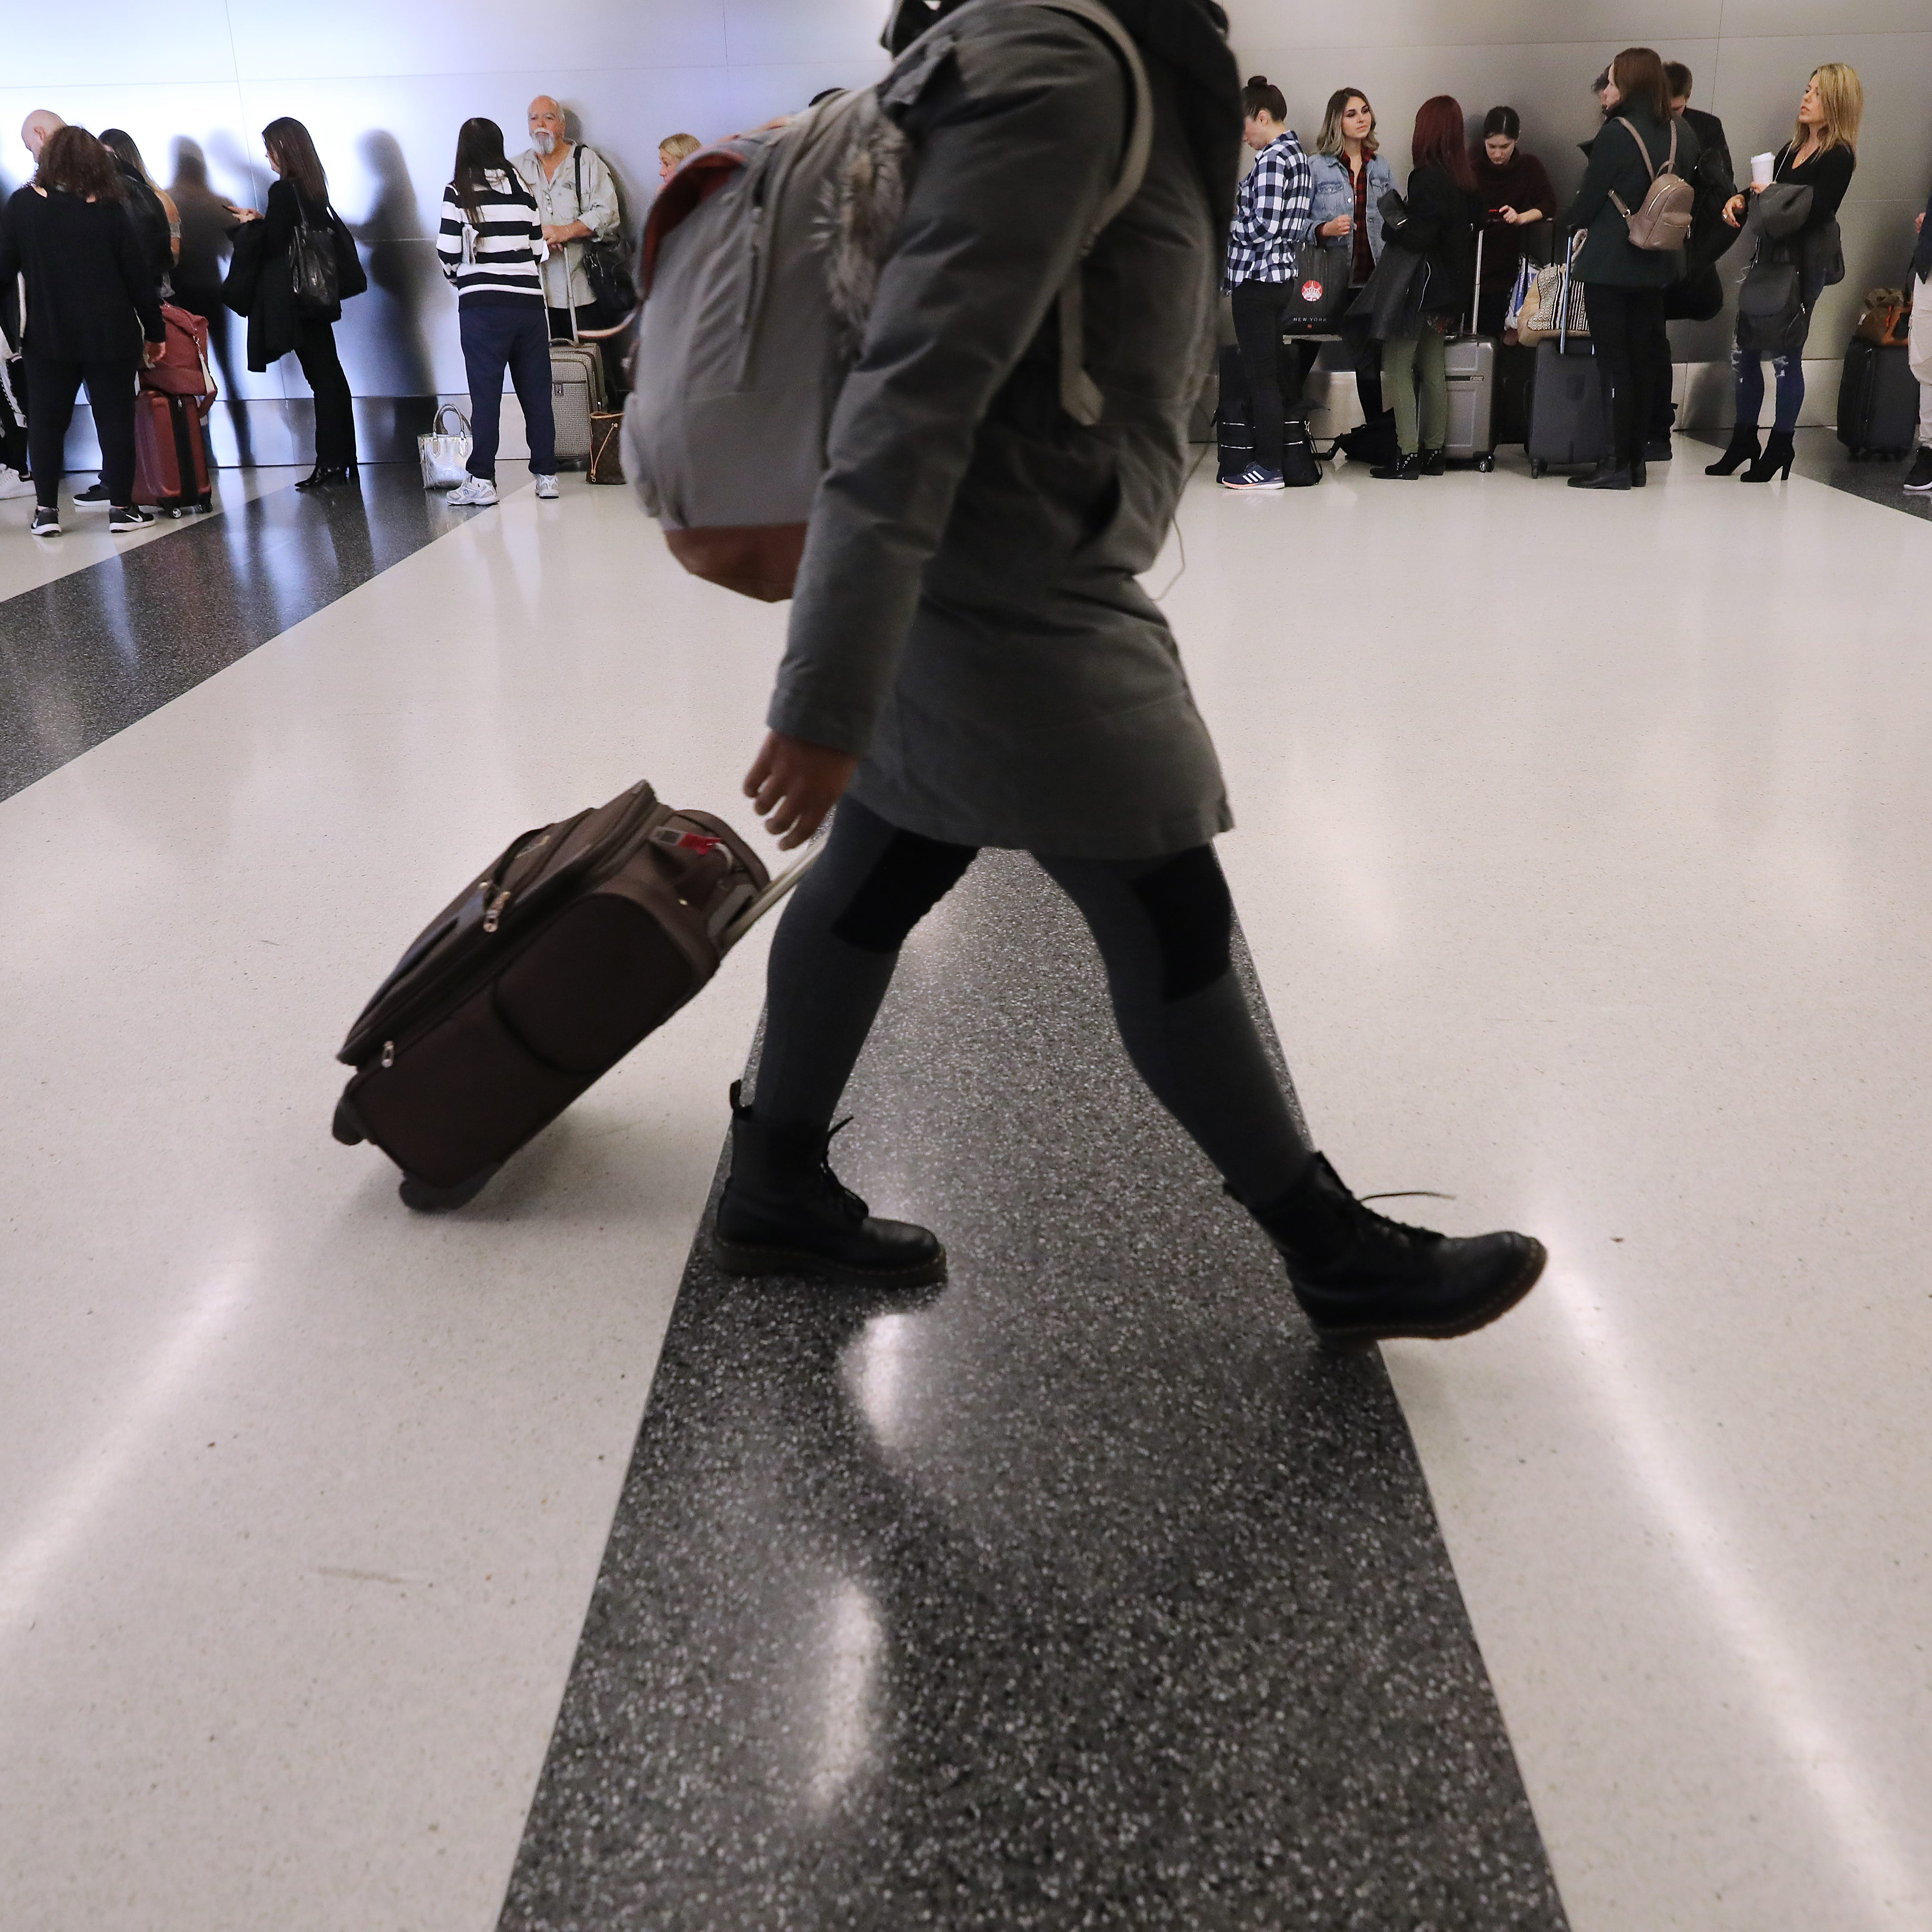 6 things to know if you are traveling for Christmas and New Year's